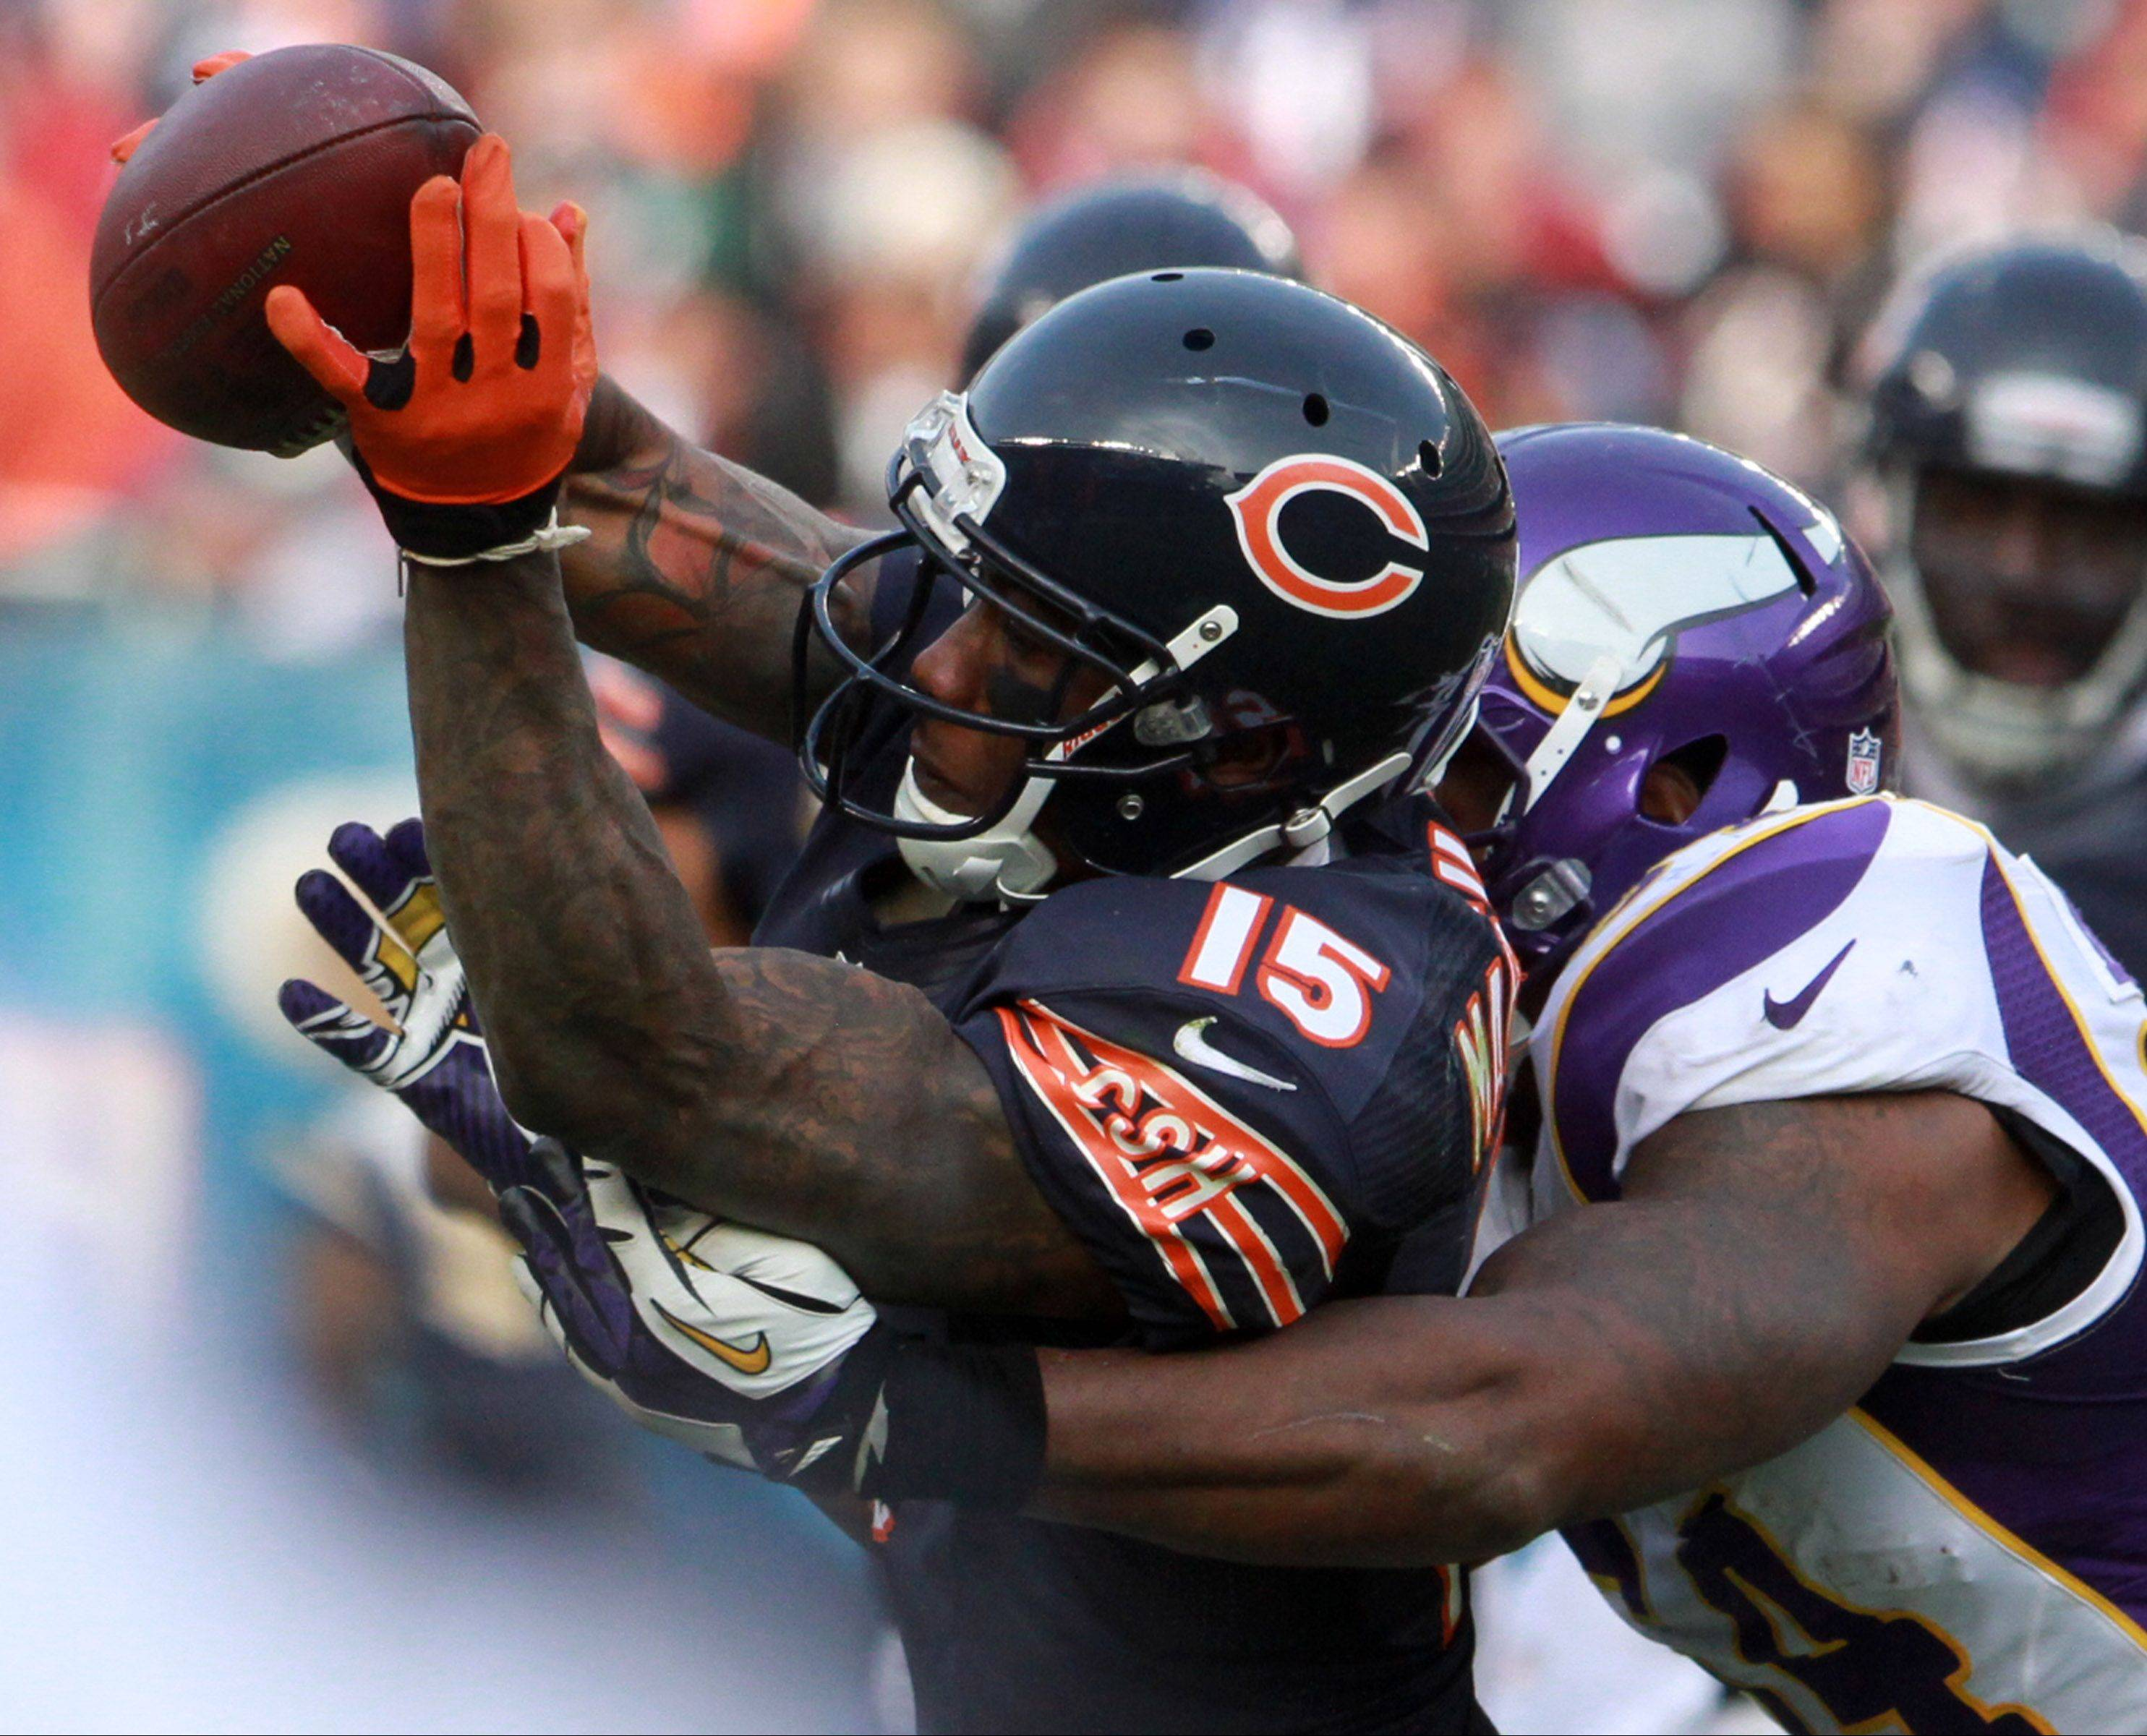 Brandon Marshall, who snared a dozen passes Sunday against the Vikings at Soldier Field, has 1,017 receiving yards this season.